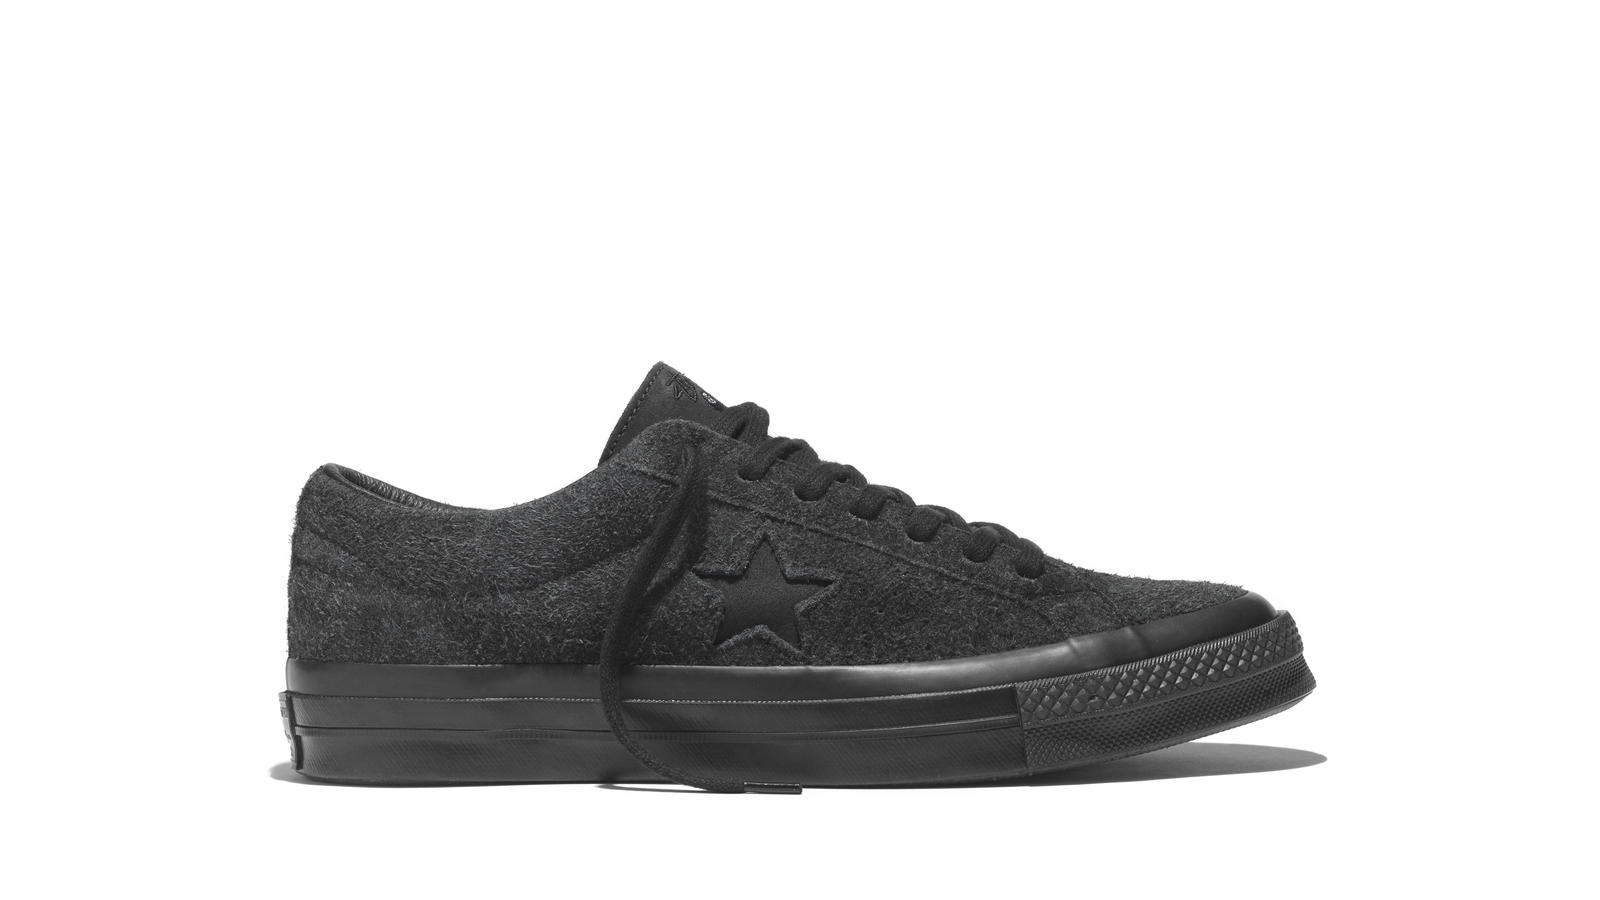 daf6e53c485d Converse and Stussy Team Up on One Star  74 - Nike News